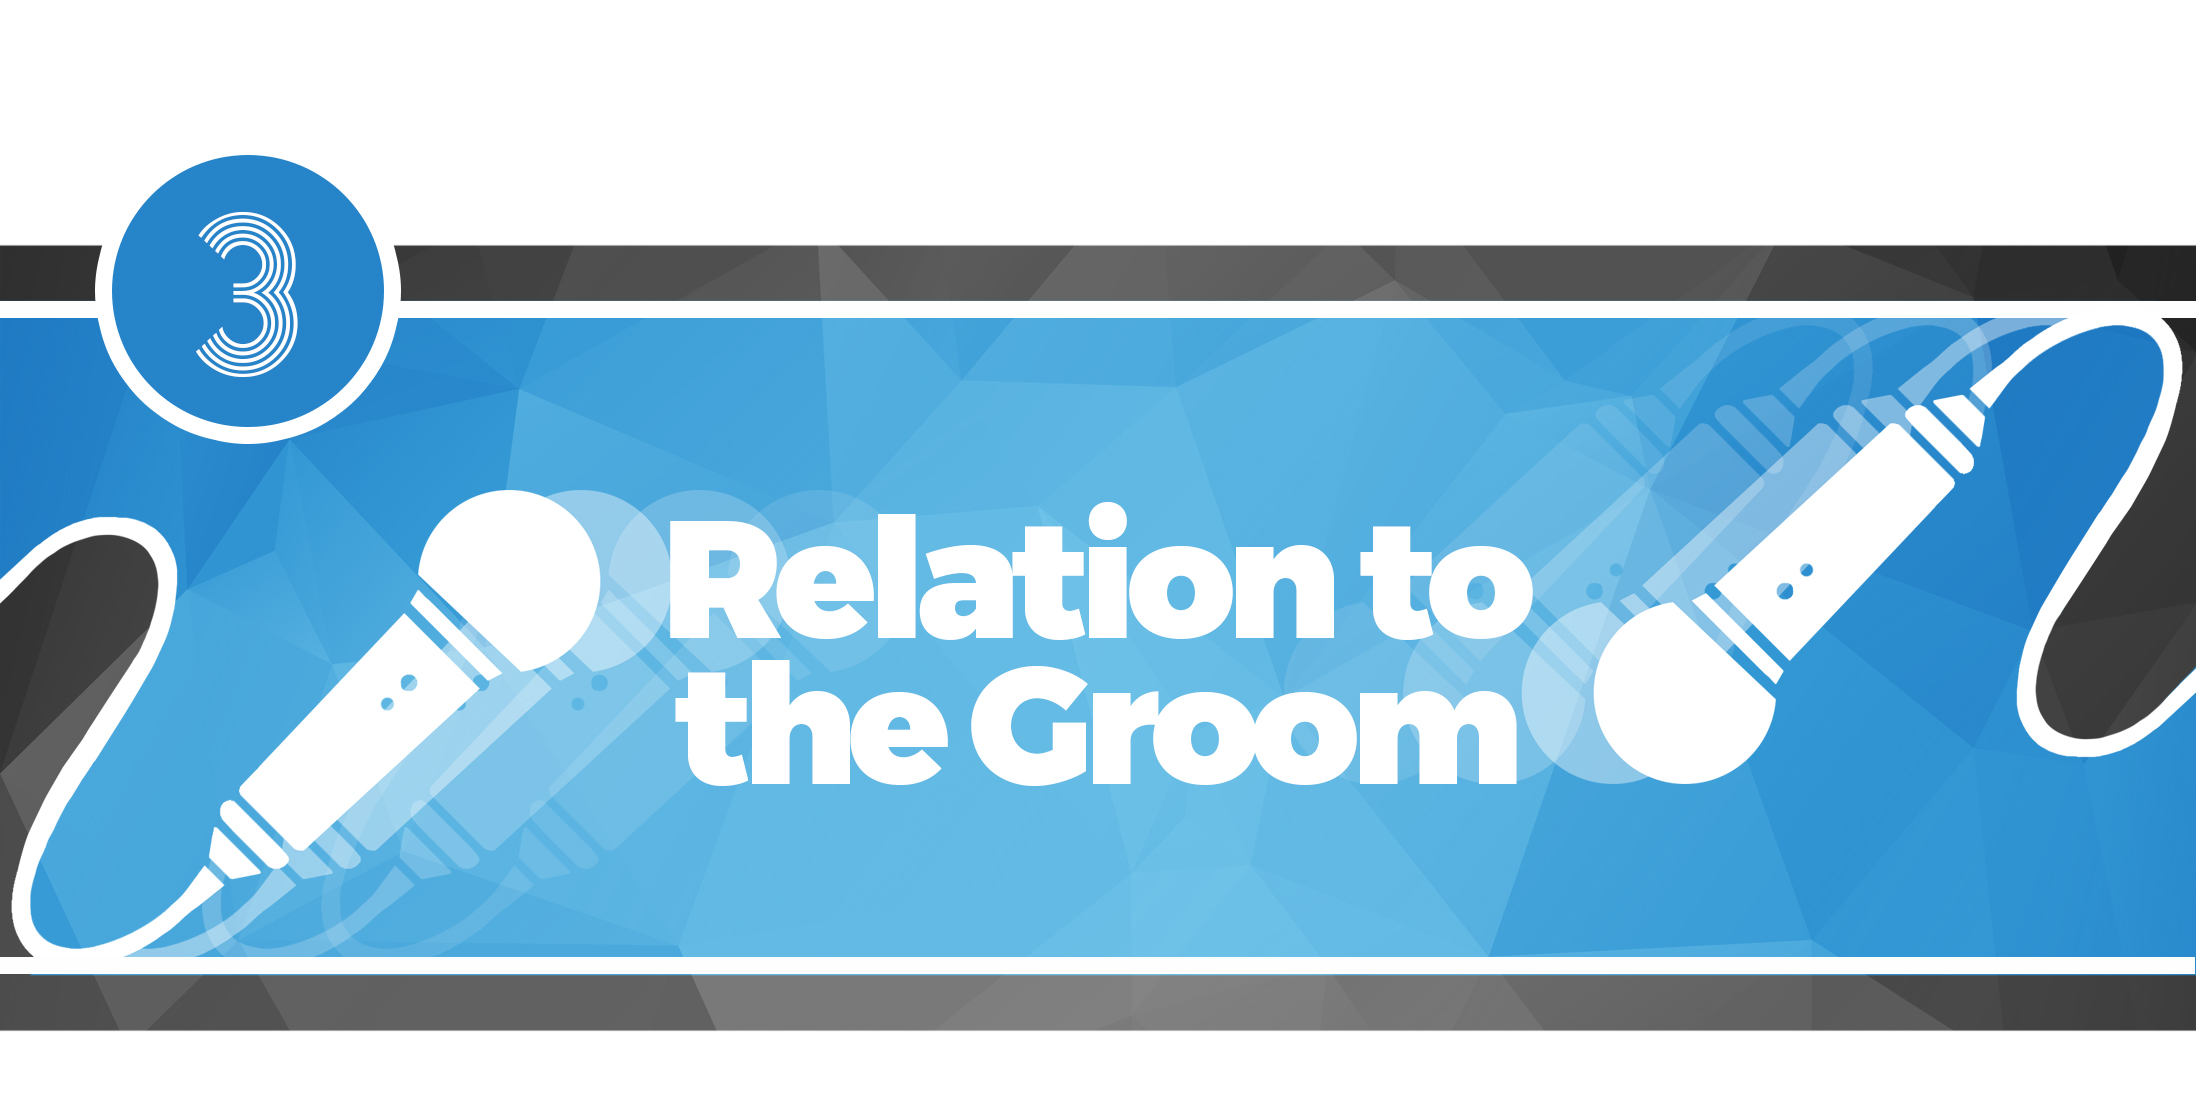 The Best Man Speech - Relation to the Groom